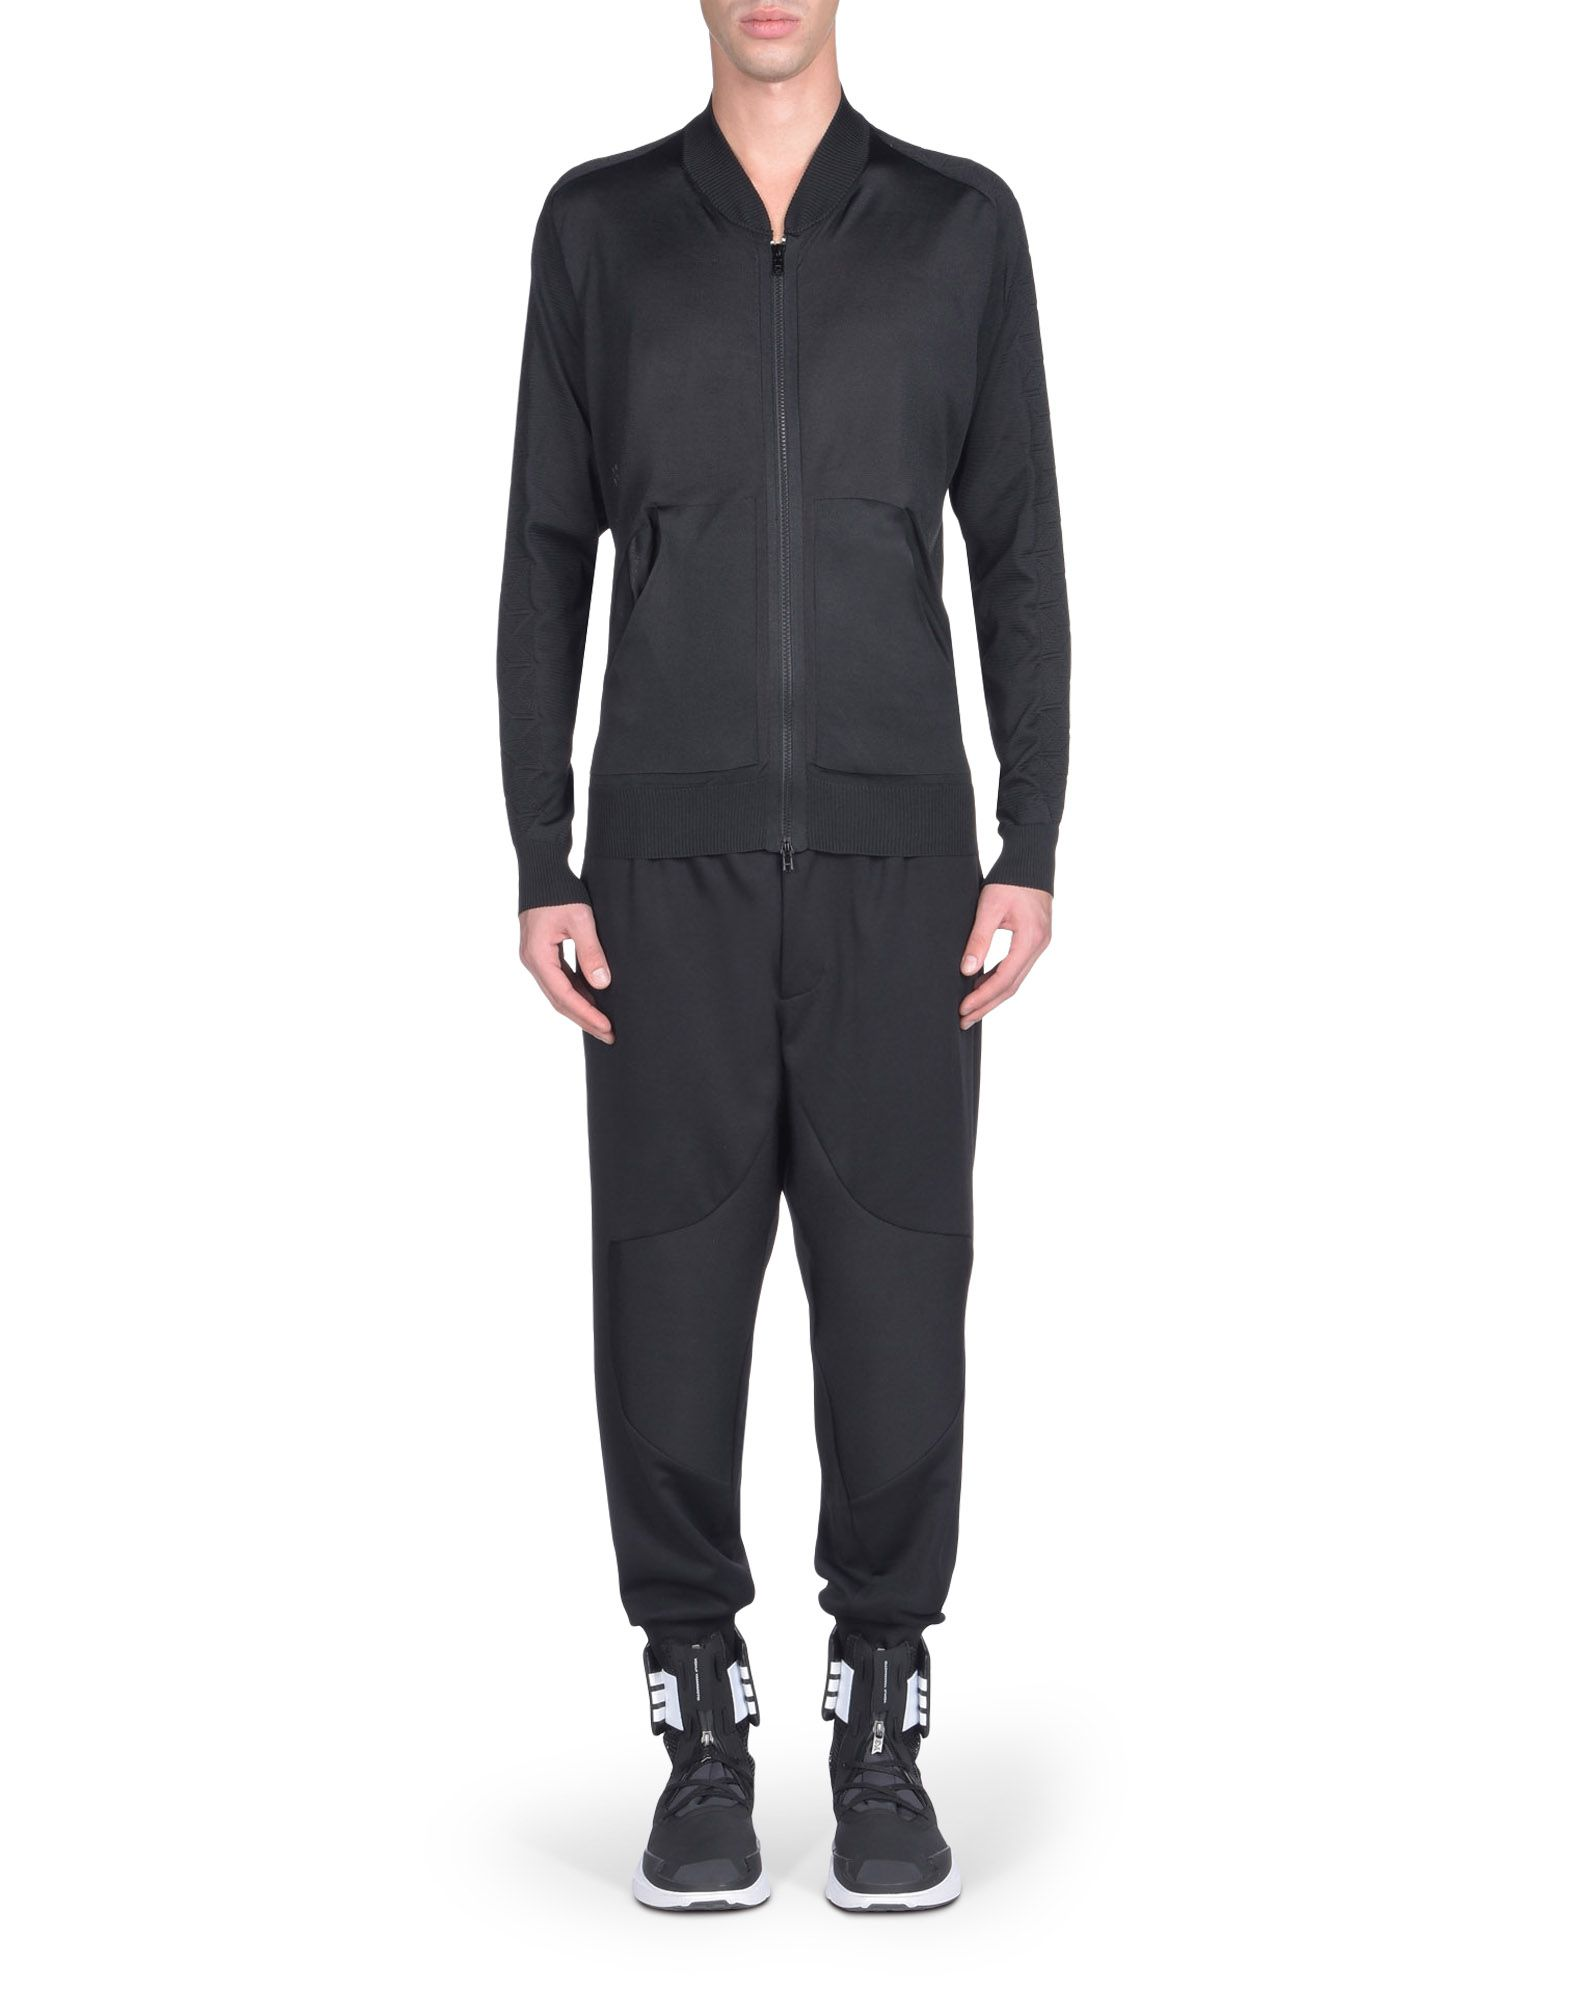 Y-3 KNIT BOMBER JACKET COATS & JACKETS man Y-3 adidas